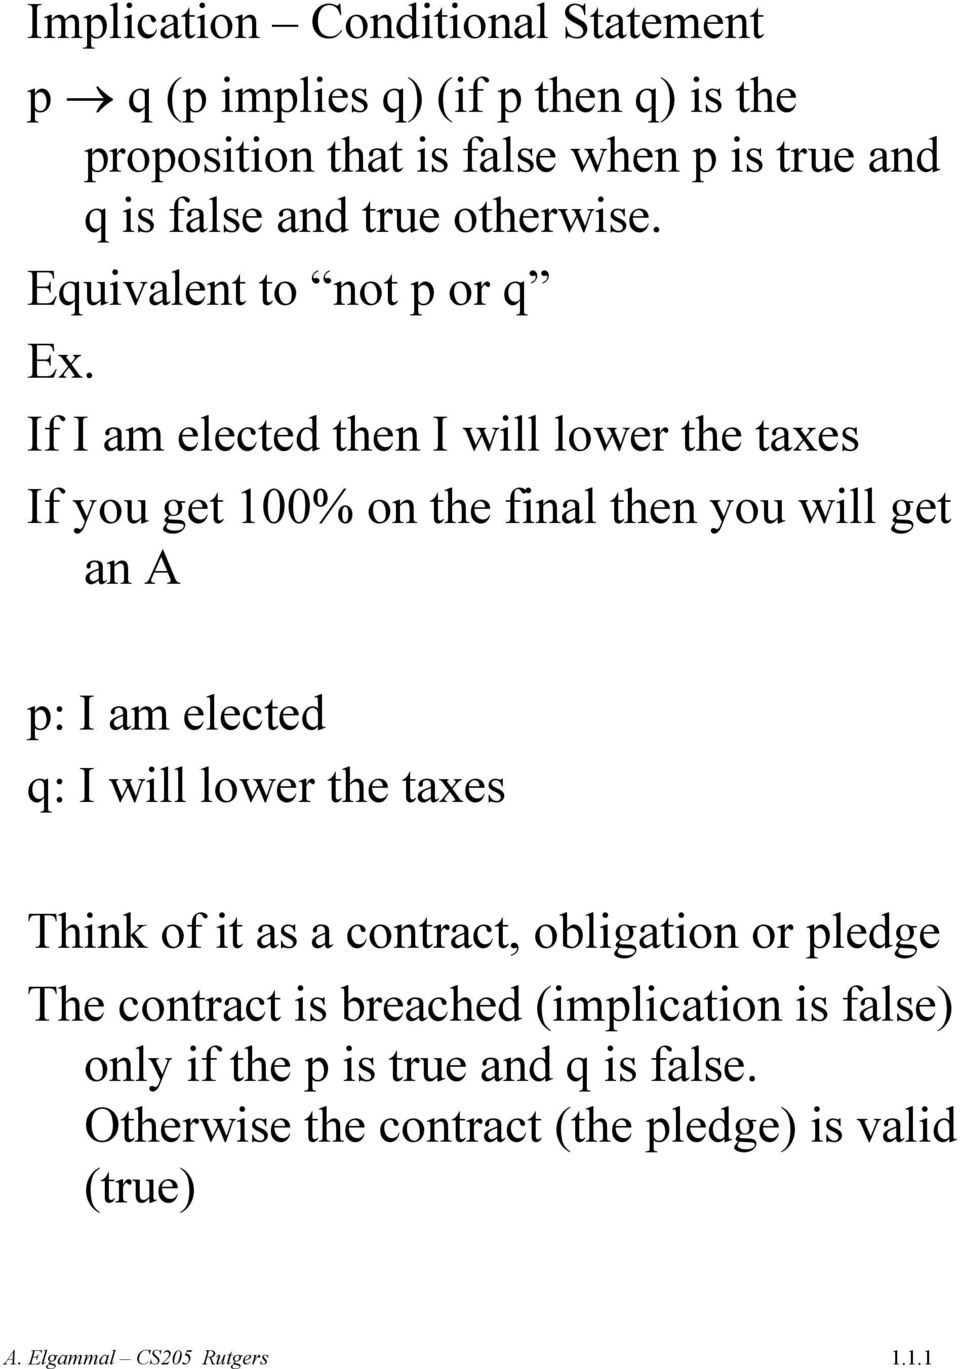 If I am elected then I will lower the taxes If you get 100% on the final then you will get an A p: I am elected q: I will